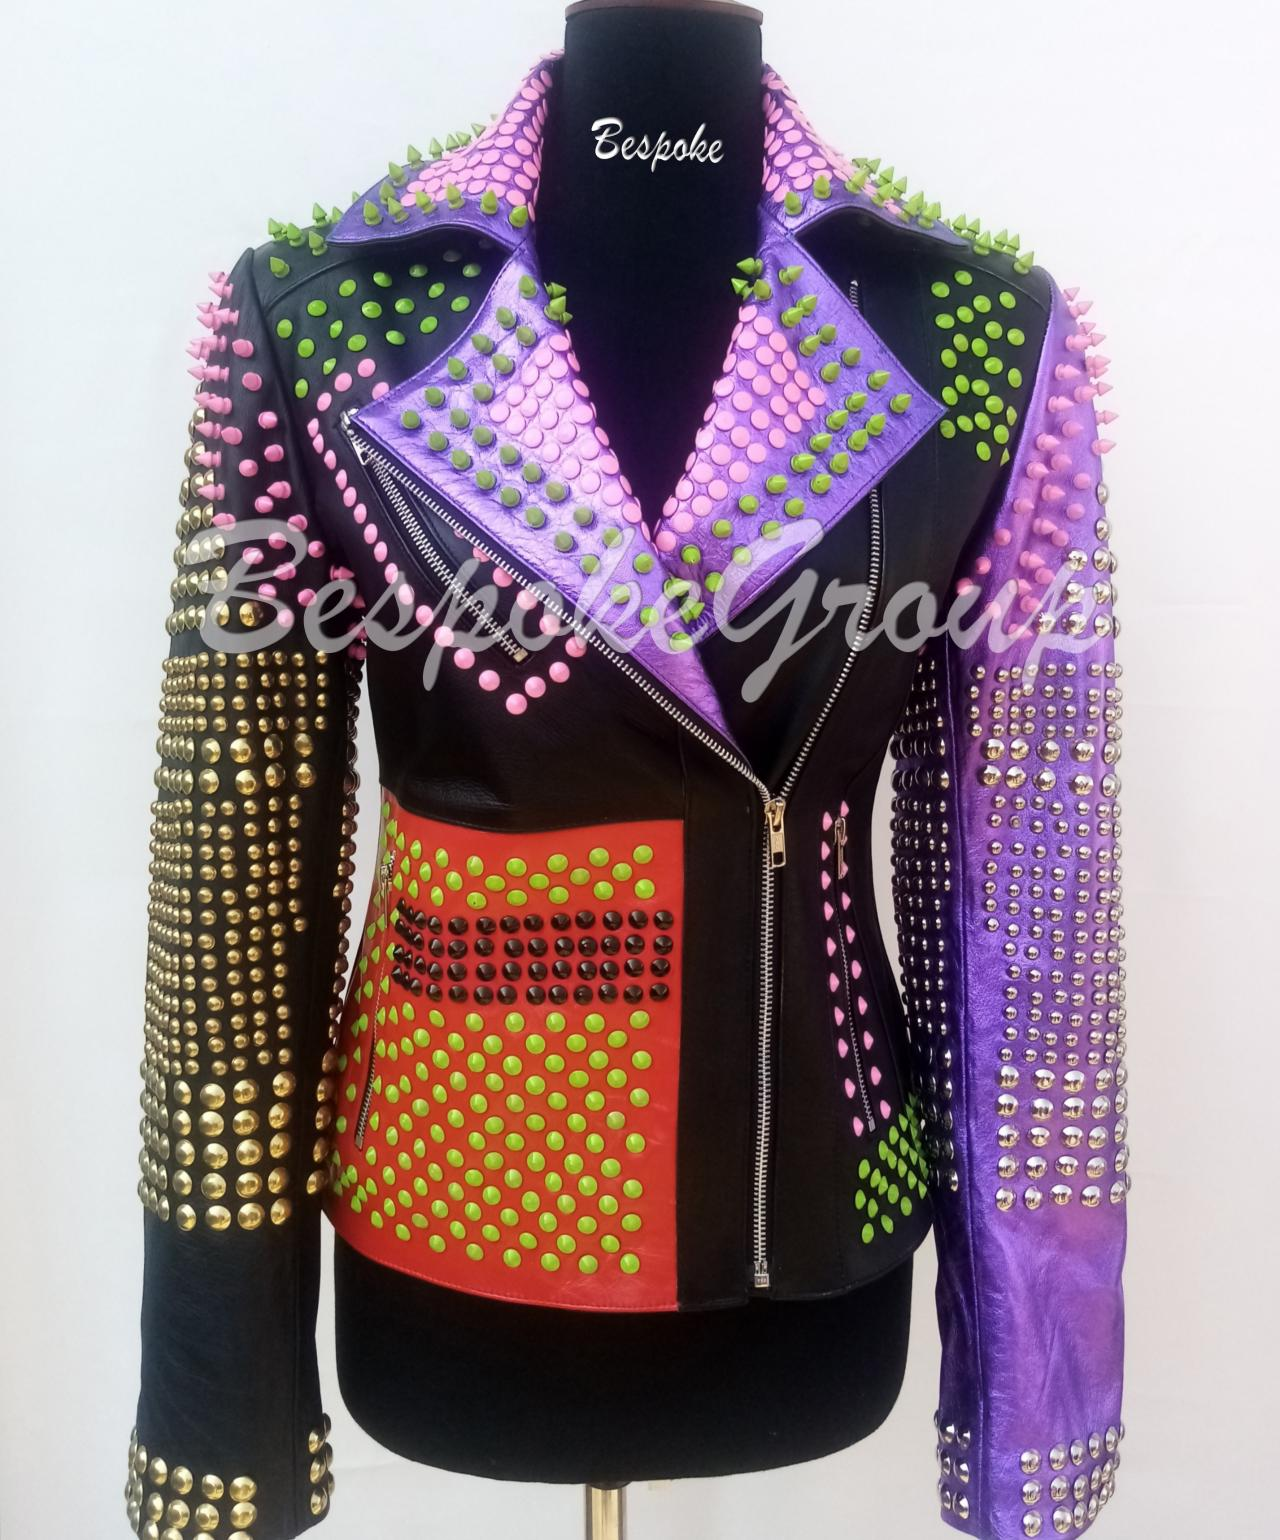 New Handmade Women Rock Punk Multicolored Spiked Studded Steampunk Brando Unique Stylish Cowhide Leather Jacket-24